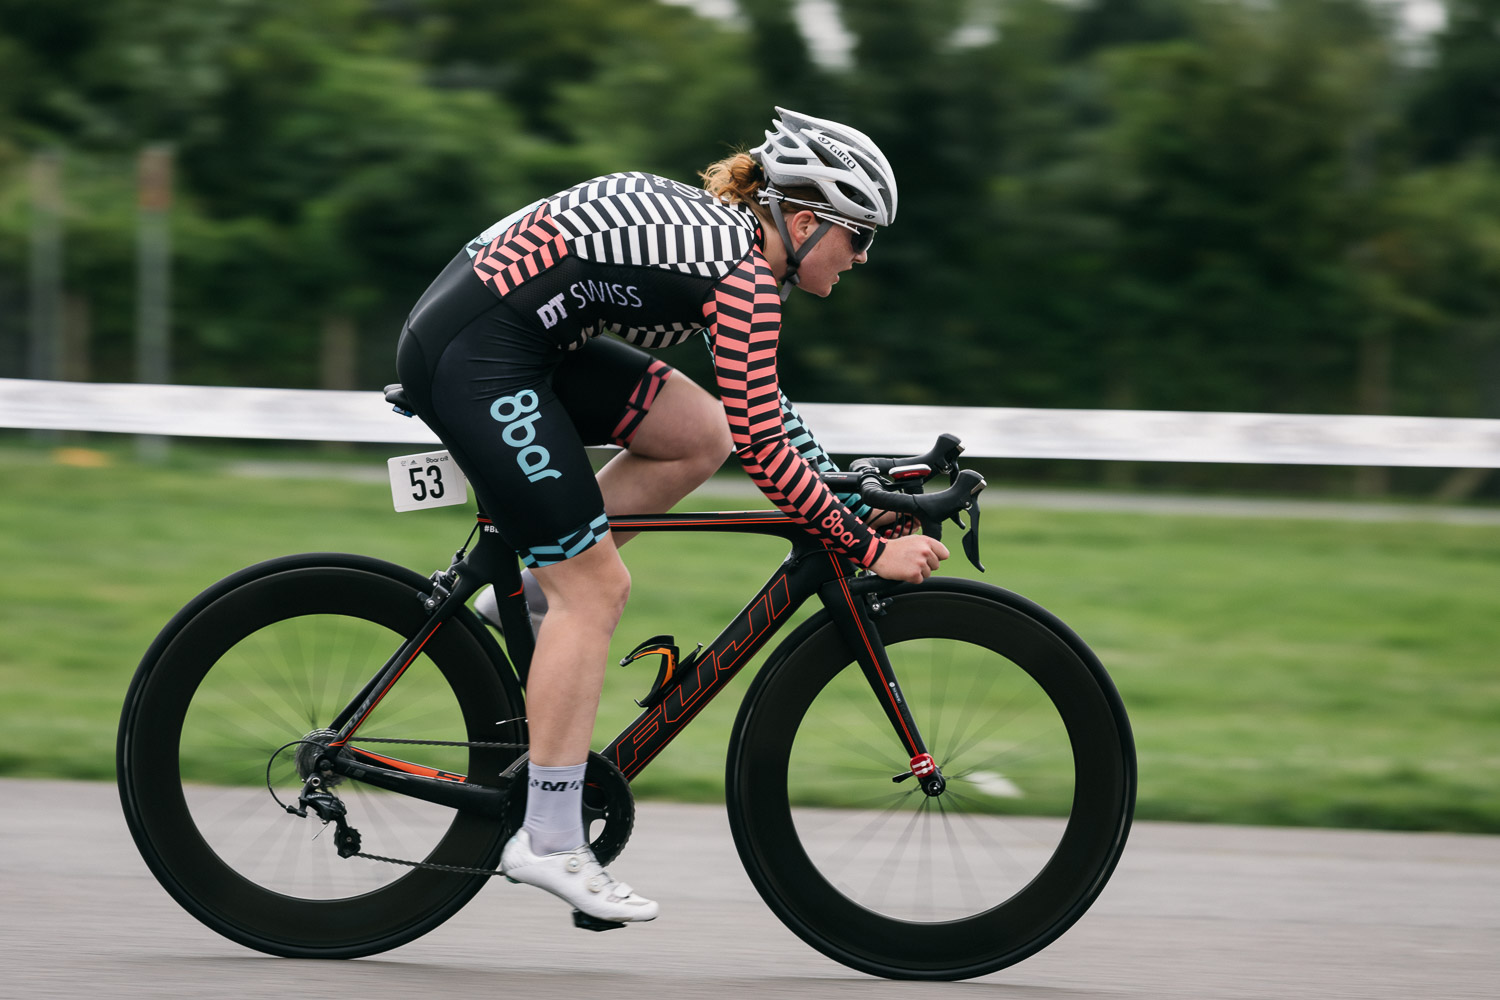 8bar-crit-fixed-gear-bike-race-stefanhaehnel-wmn-rr-7